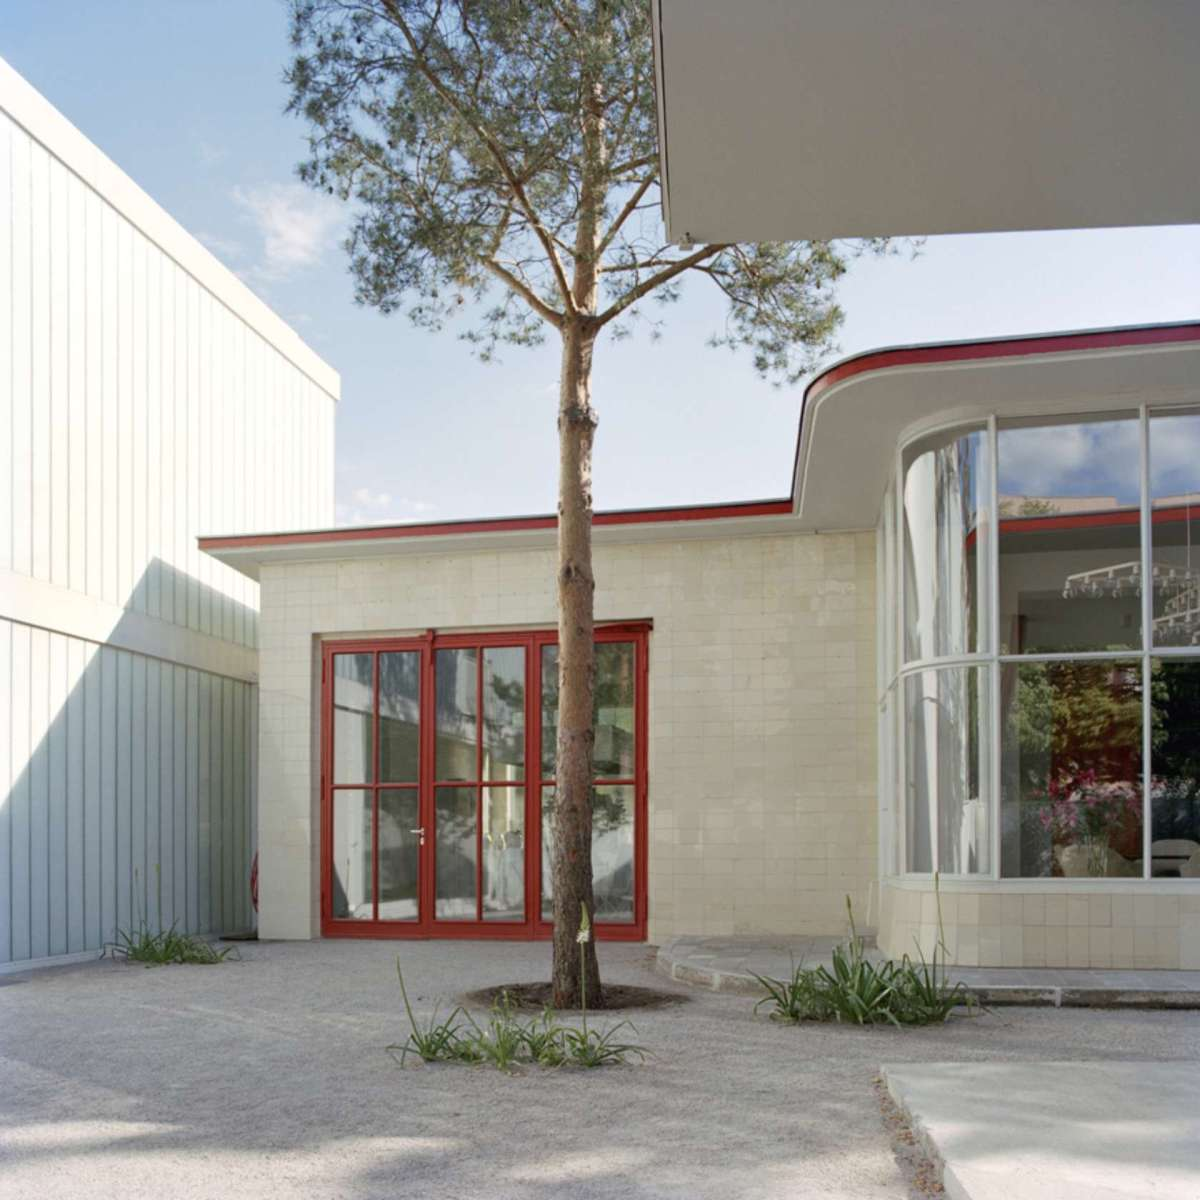 juerg-judins-converted-1950-gas-station-home-6